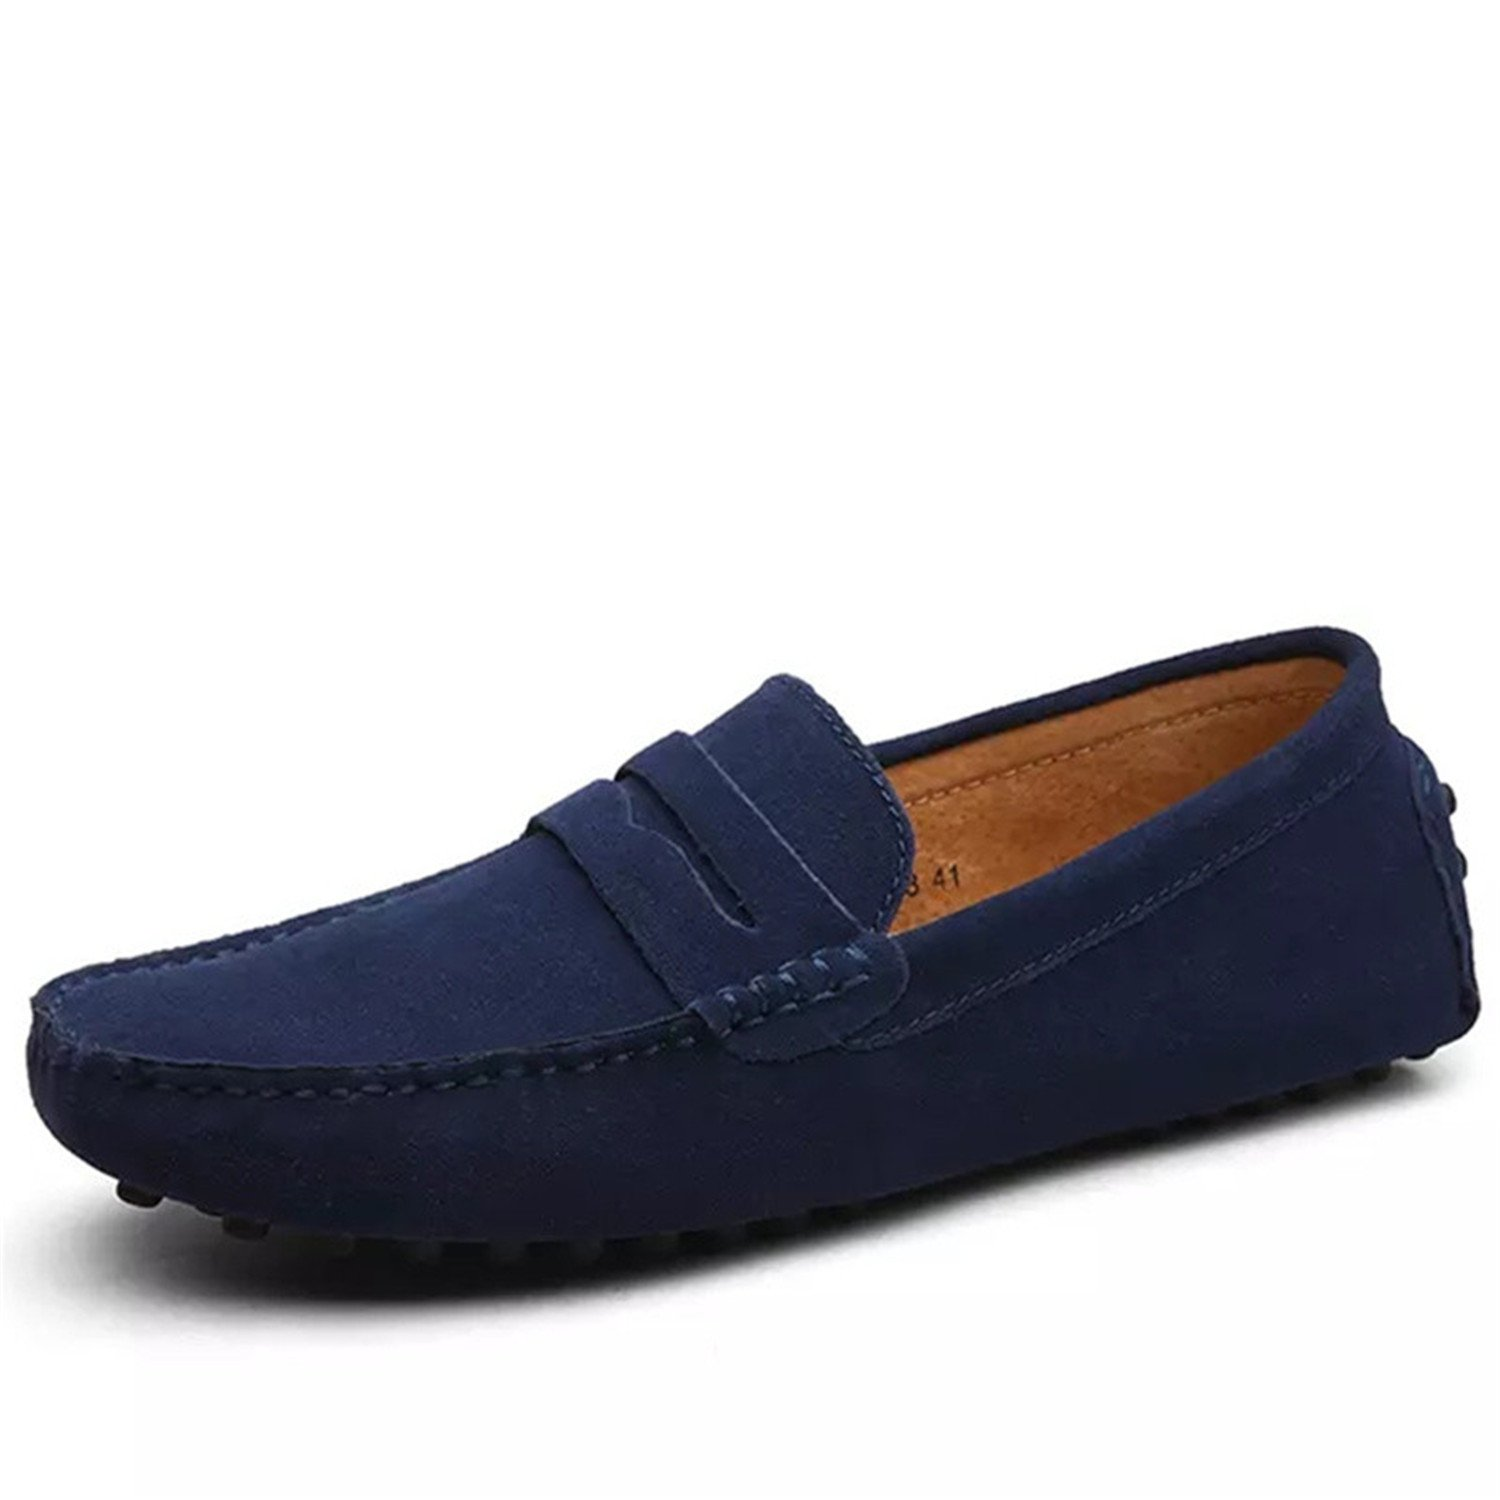 Sonjer Men Casual Suede Loafers 2017 Black Solid Leather Driving Moccasins Slip On Men Formal Loafers Shoes Male Dress Loafers